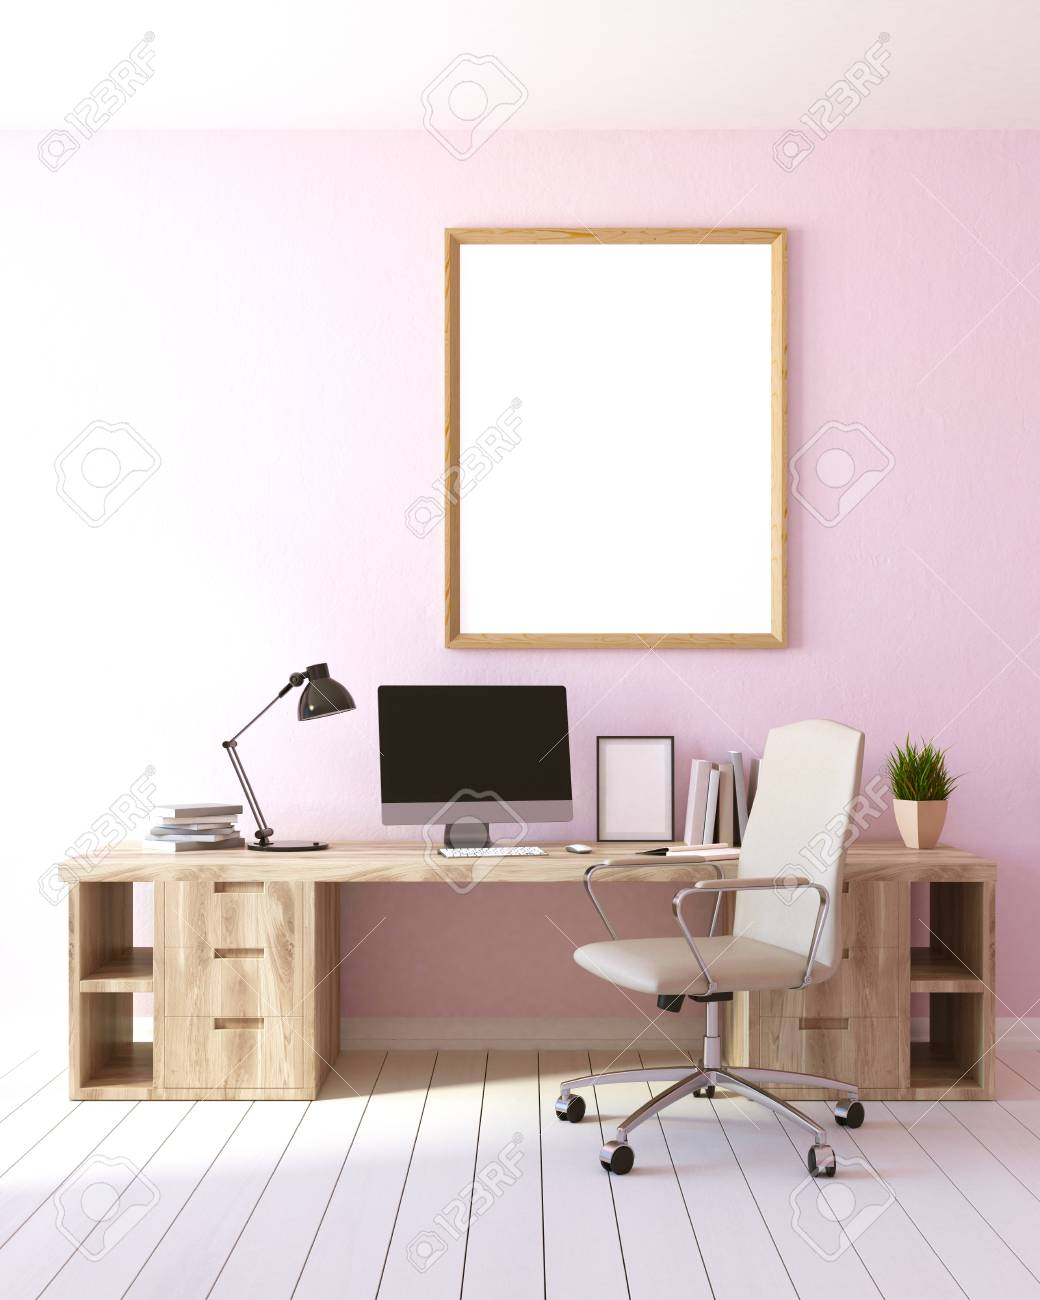 Modern home office interior with light pink walls a white wooden modern home office interior with light pink walls a white wooden floor a computer aloadofball Image collections